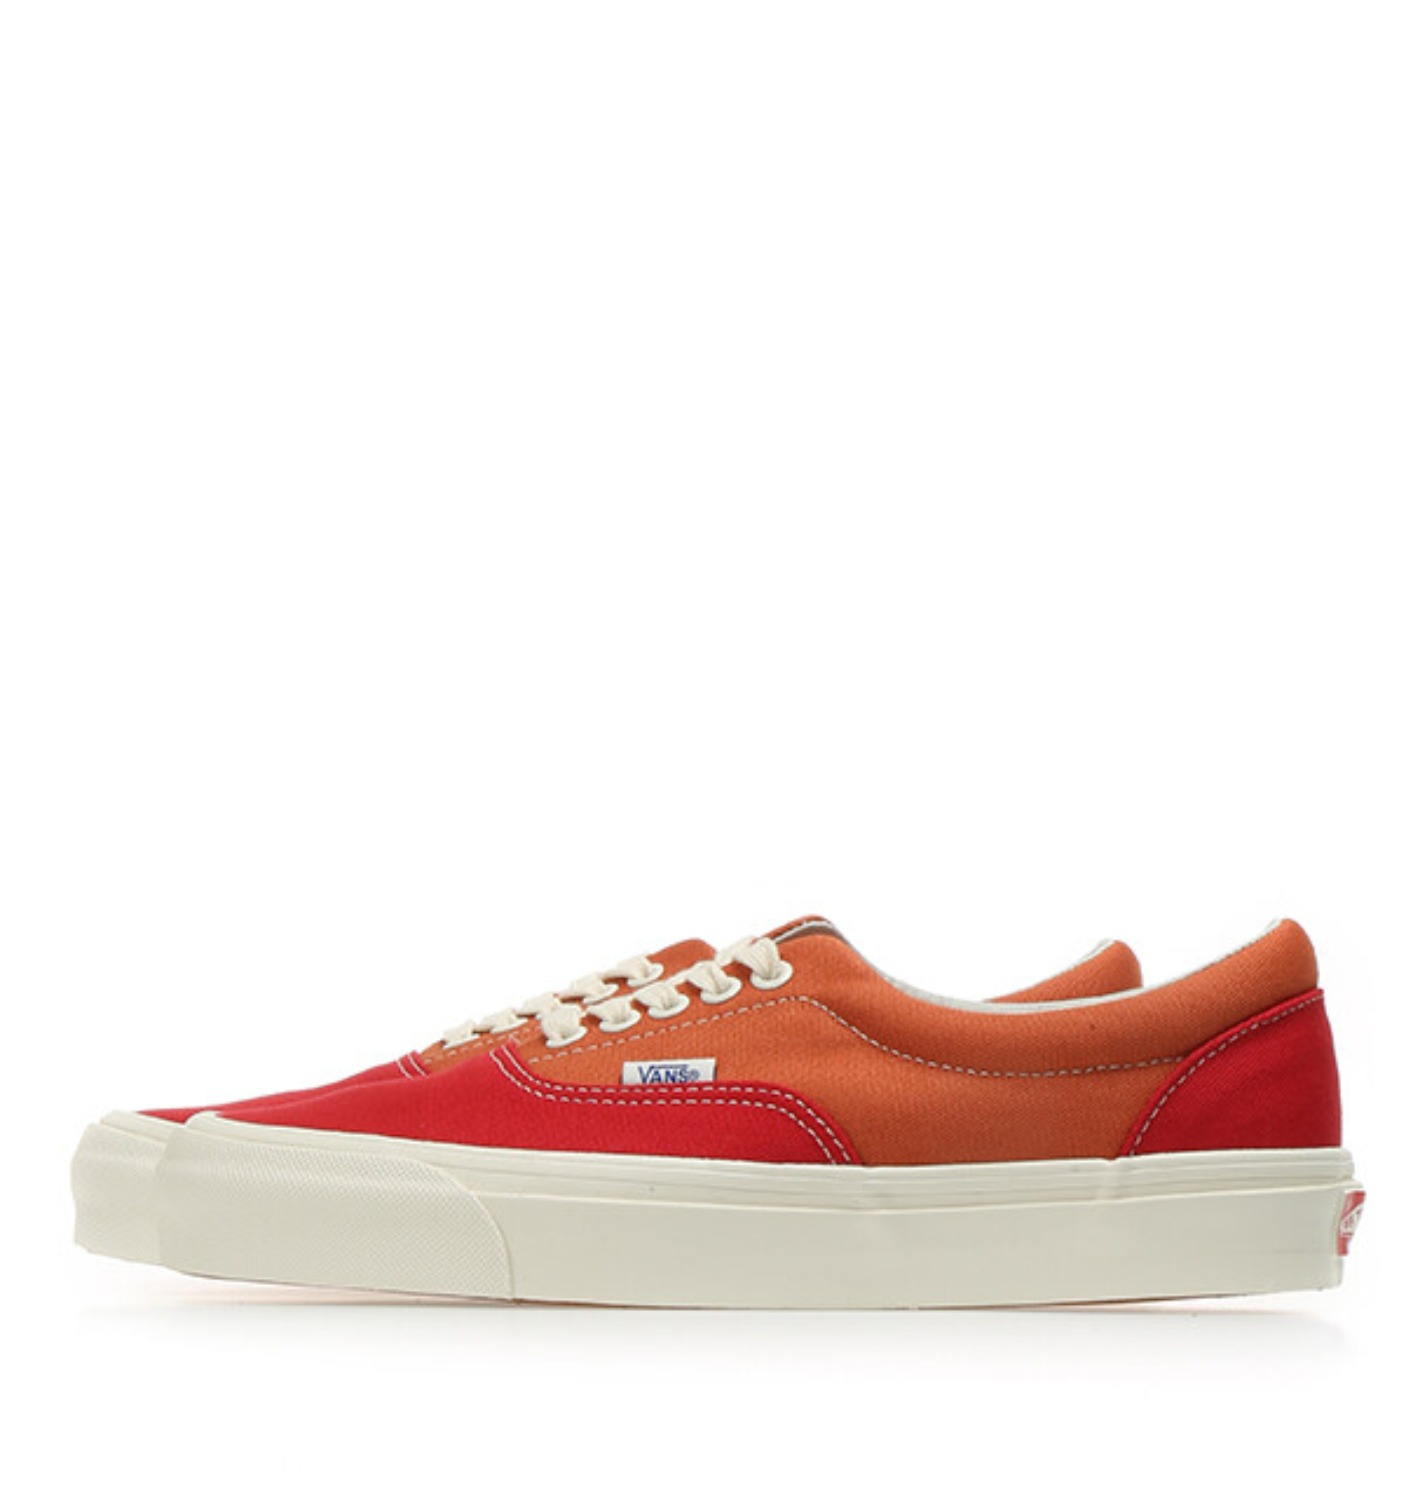 OG ERA LX(CANVAS)RACING RED/APRICOT ORNAGE